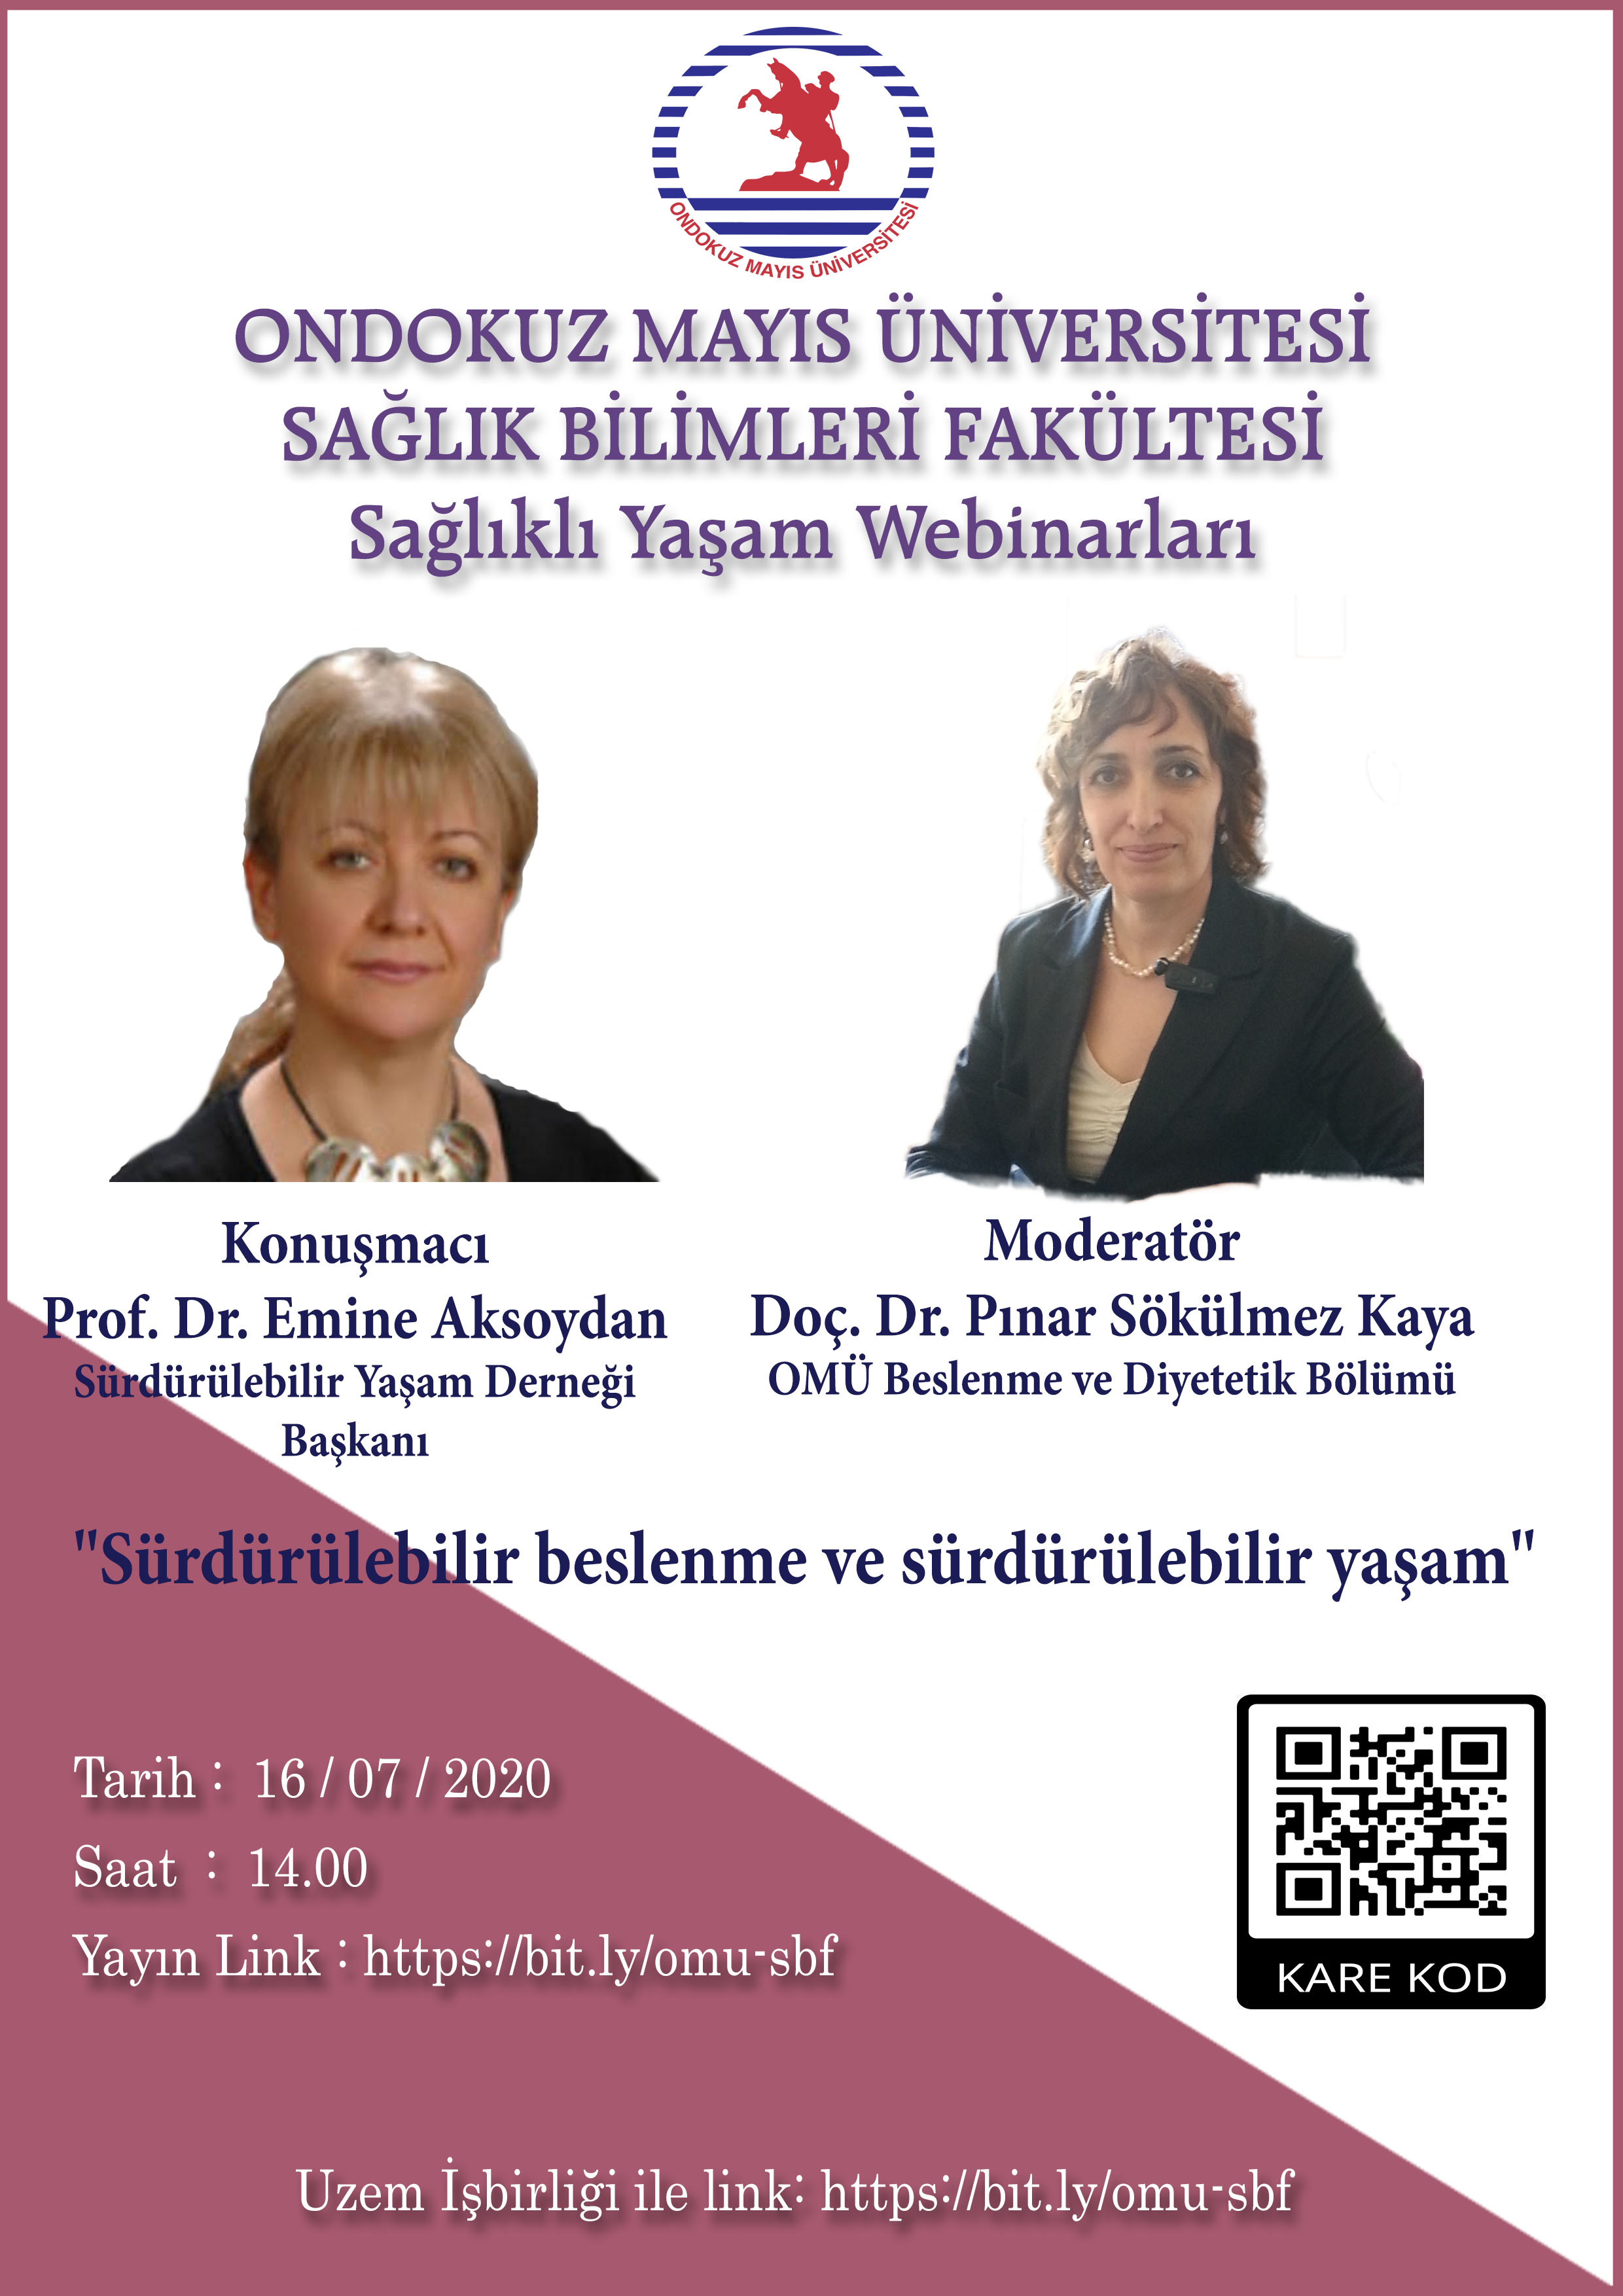 http://www.omu.edu.tr/sites/default/files/saglikli_yasam_webinarlari_-_2.jpg